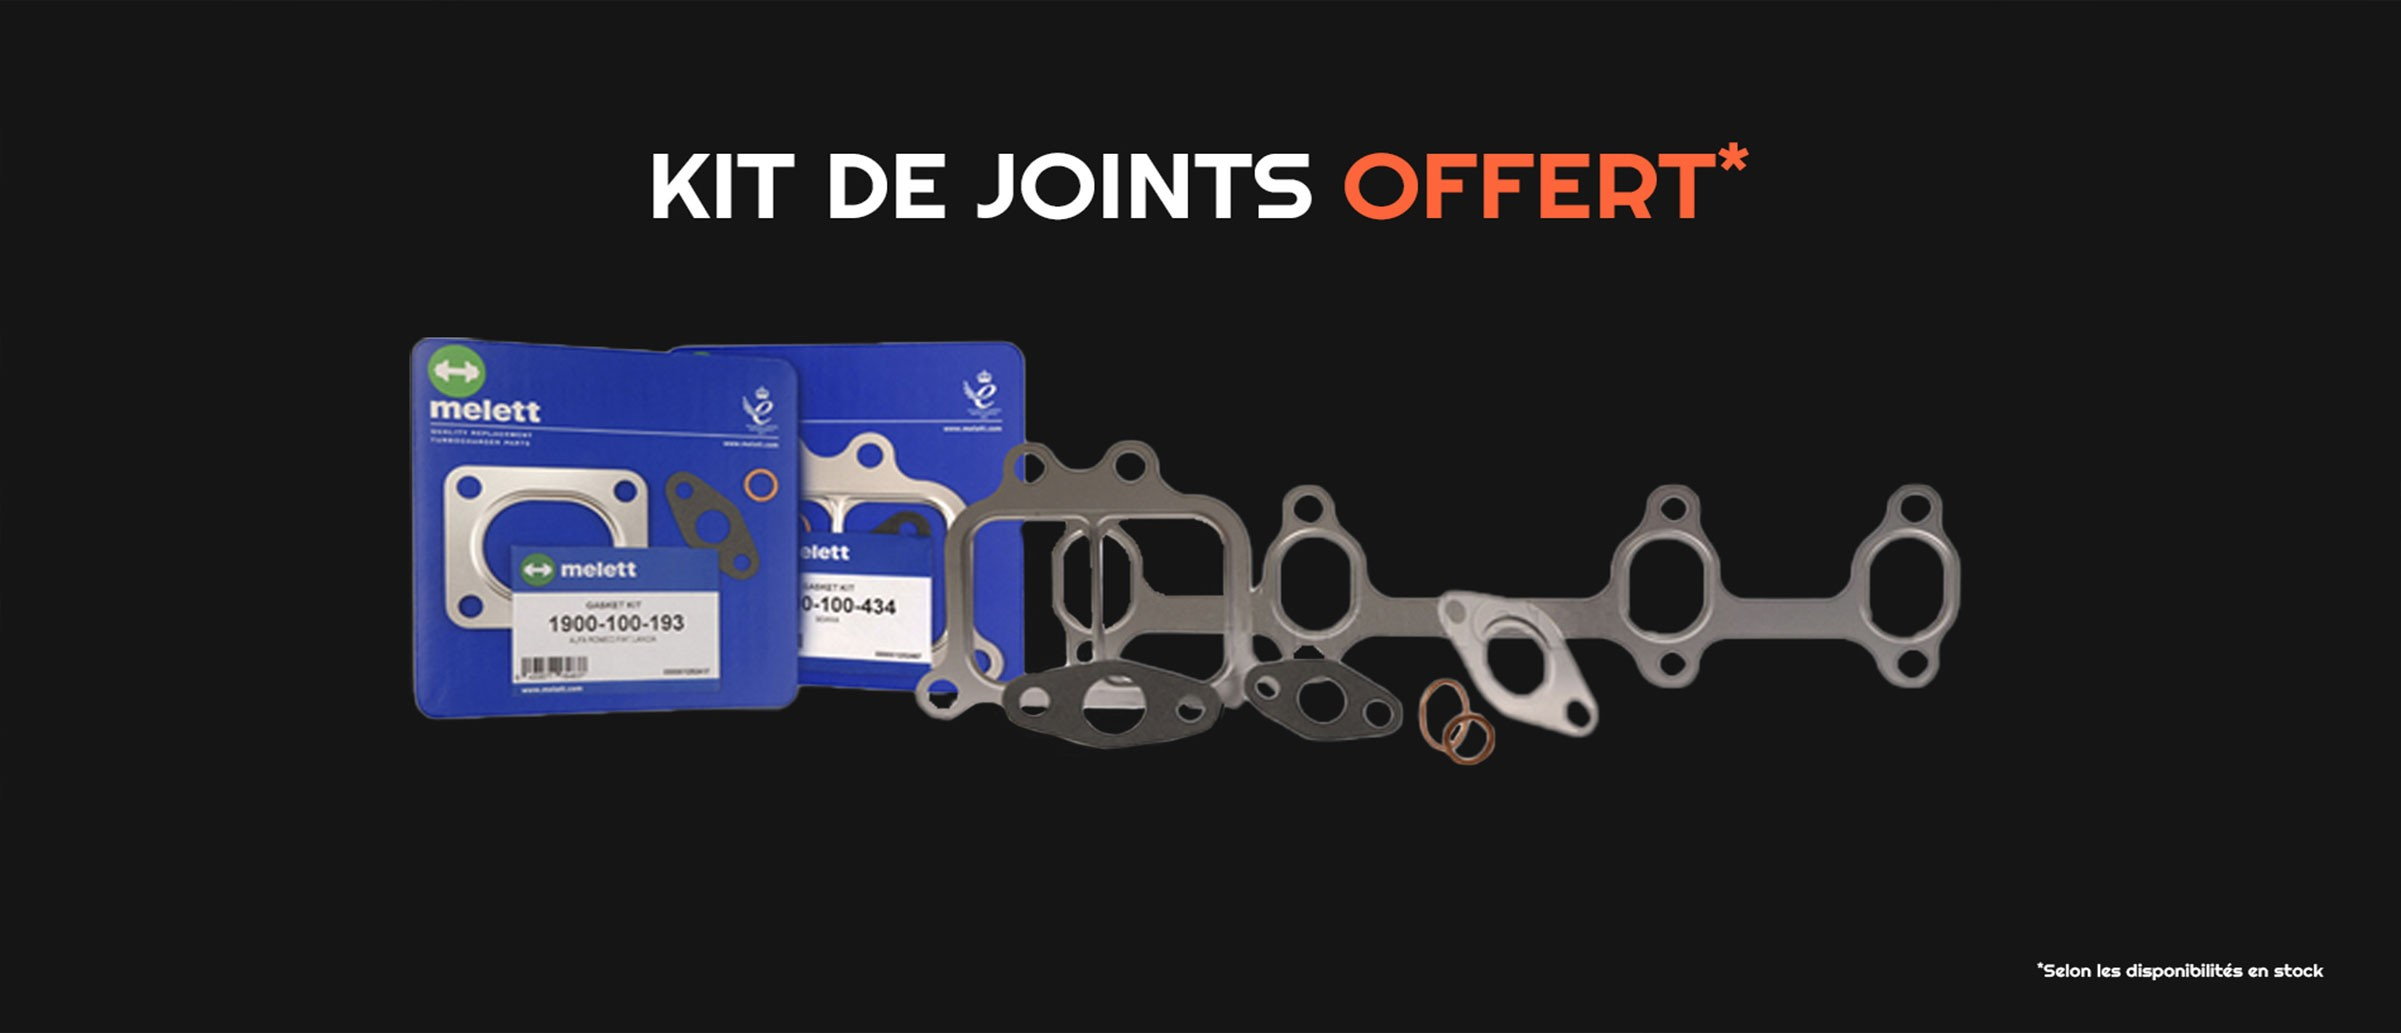 Kit de joints offert